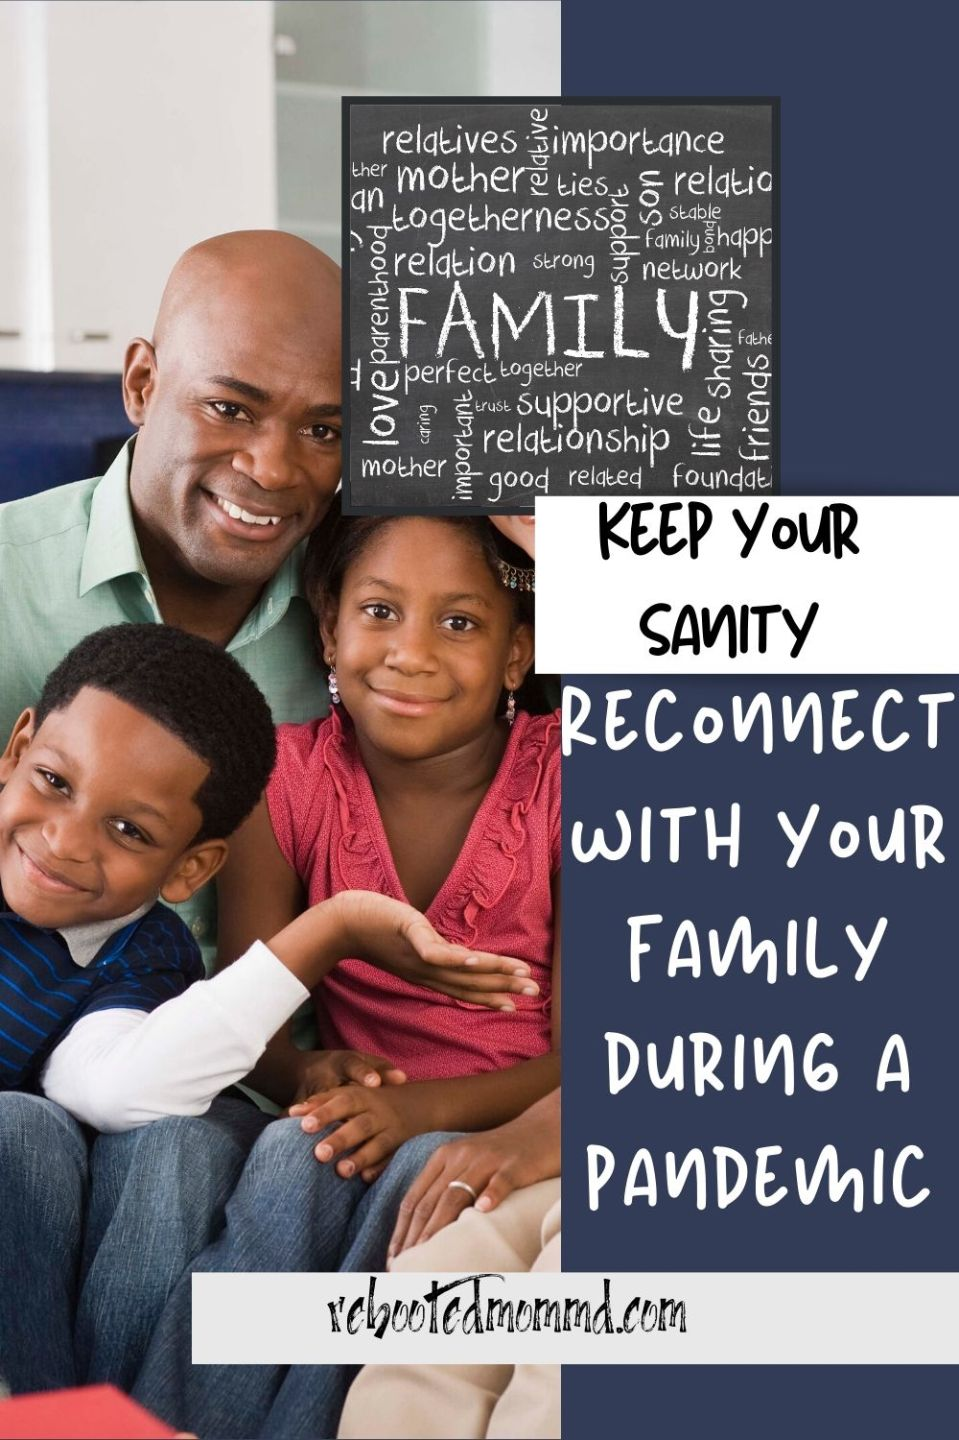 Keep Your Sanity: Reconnect with Family During a Pandemic